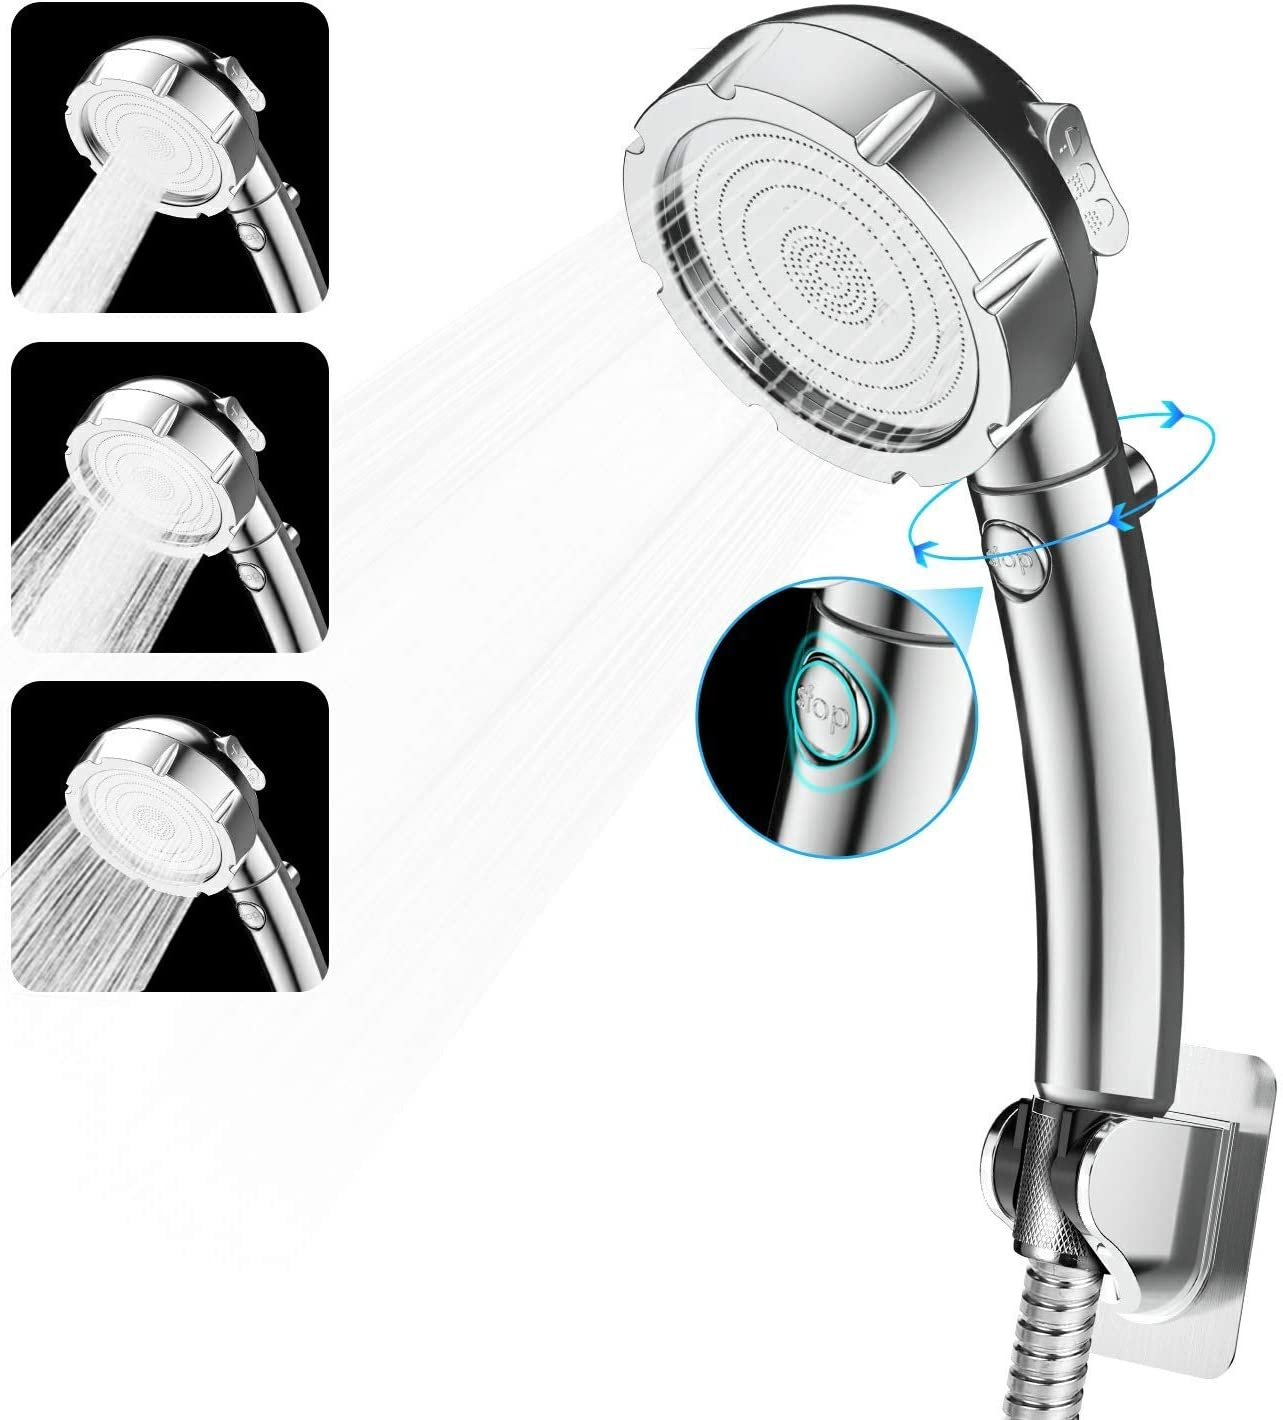 Handheld Shower Head High Pressure 3 Spray Setting ON//OFF Pause Water Saving